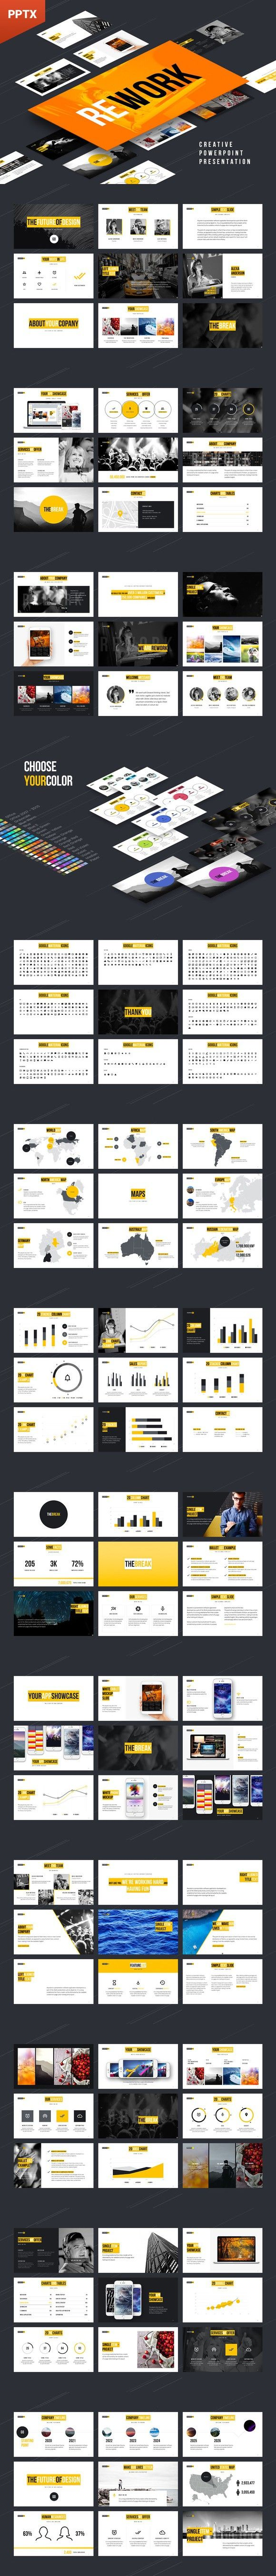 Rework PowerPoint Presentation. Google Slides Templates. $16.00